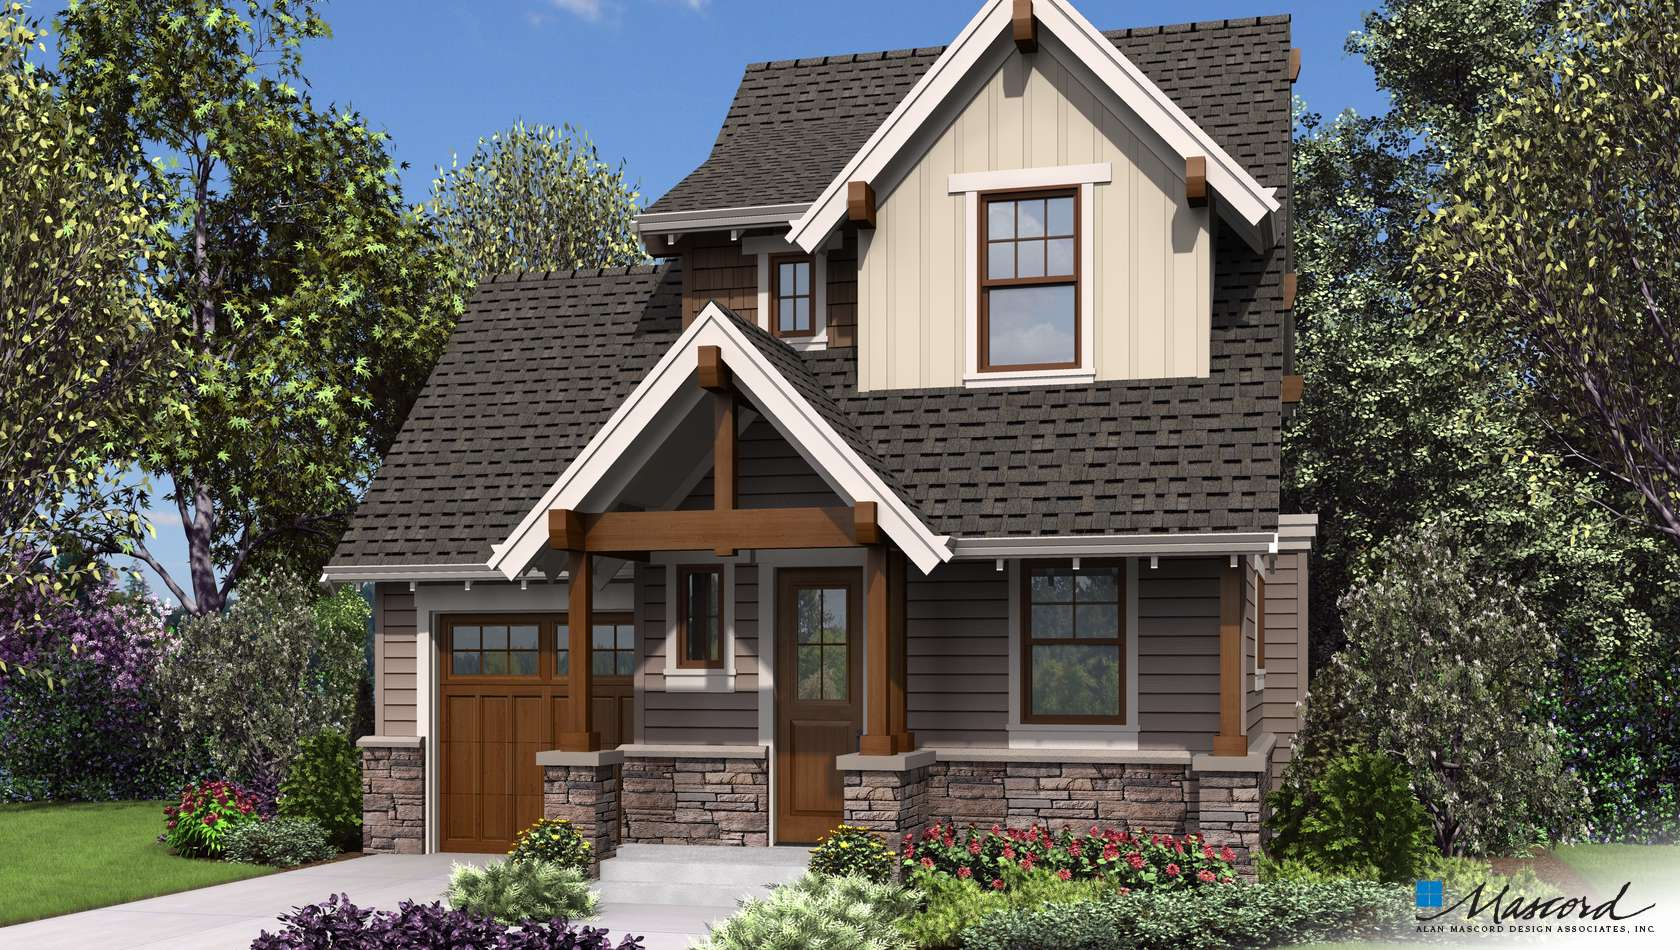 Mascord House Plan 21148: The Montreux